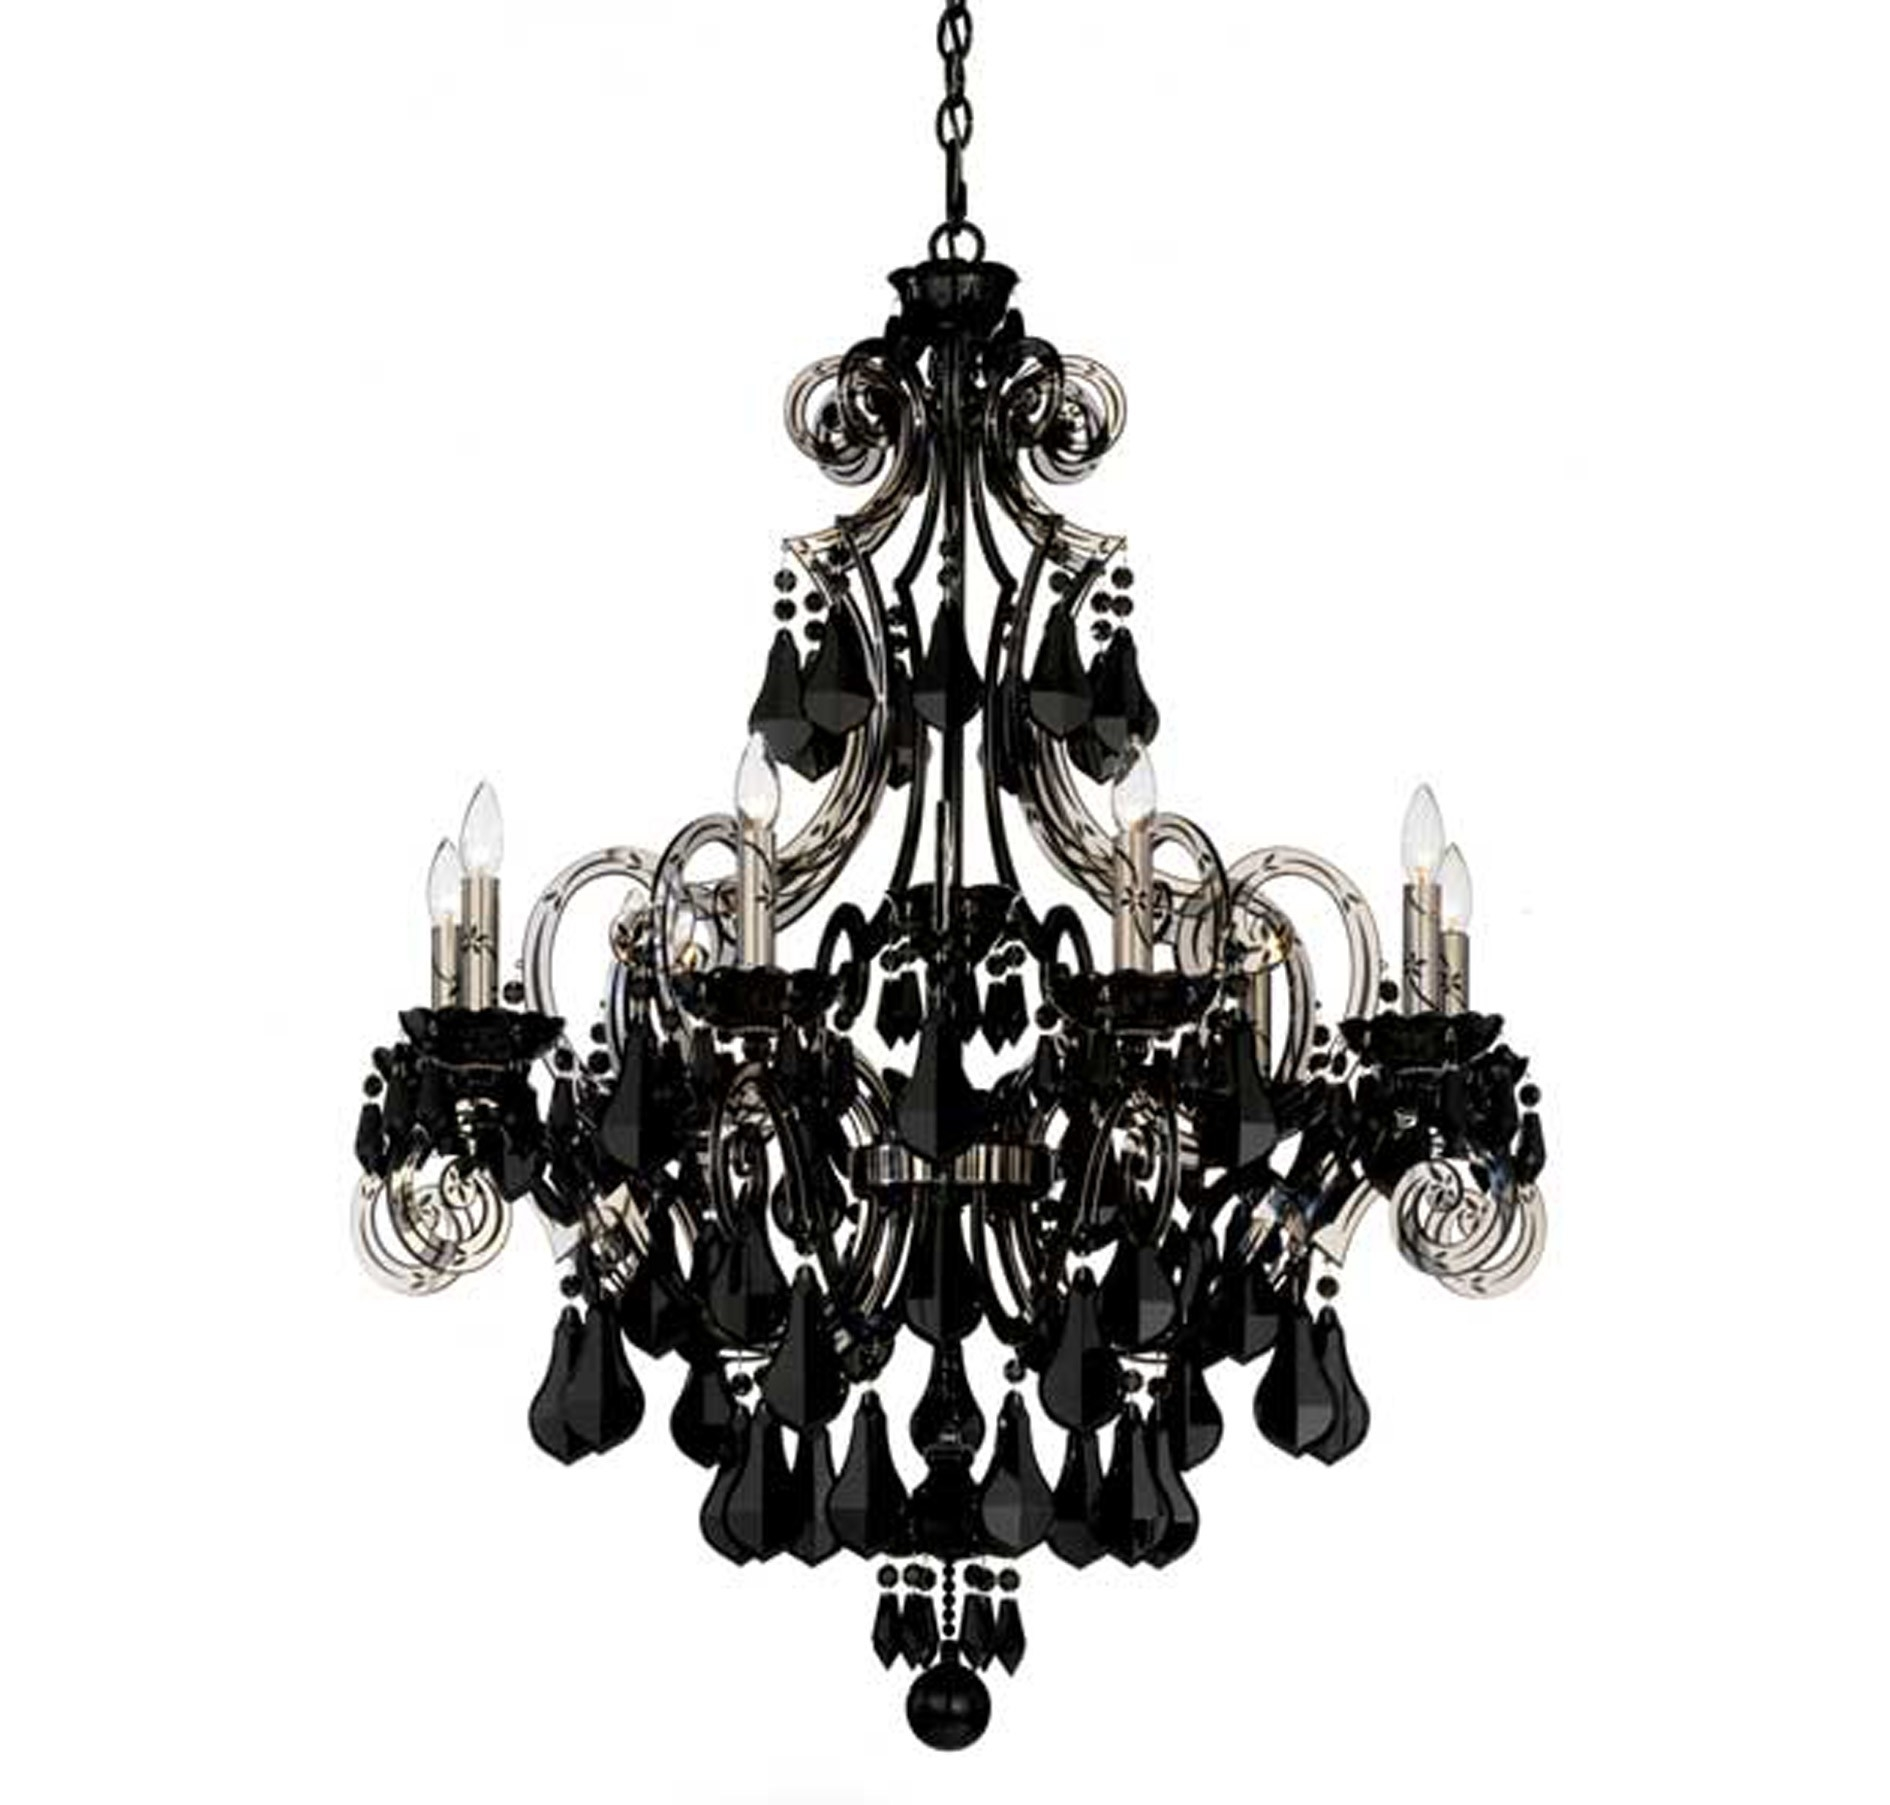 Top 15 Large Black Chandelier Chandelier Ideas